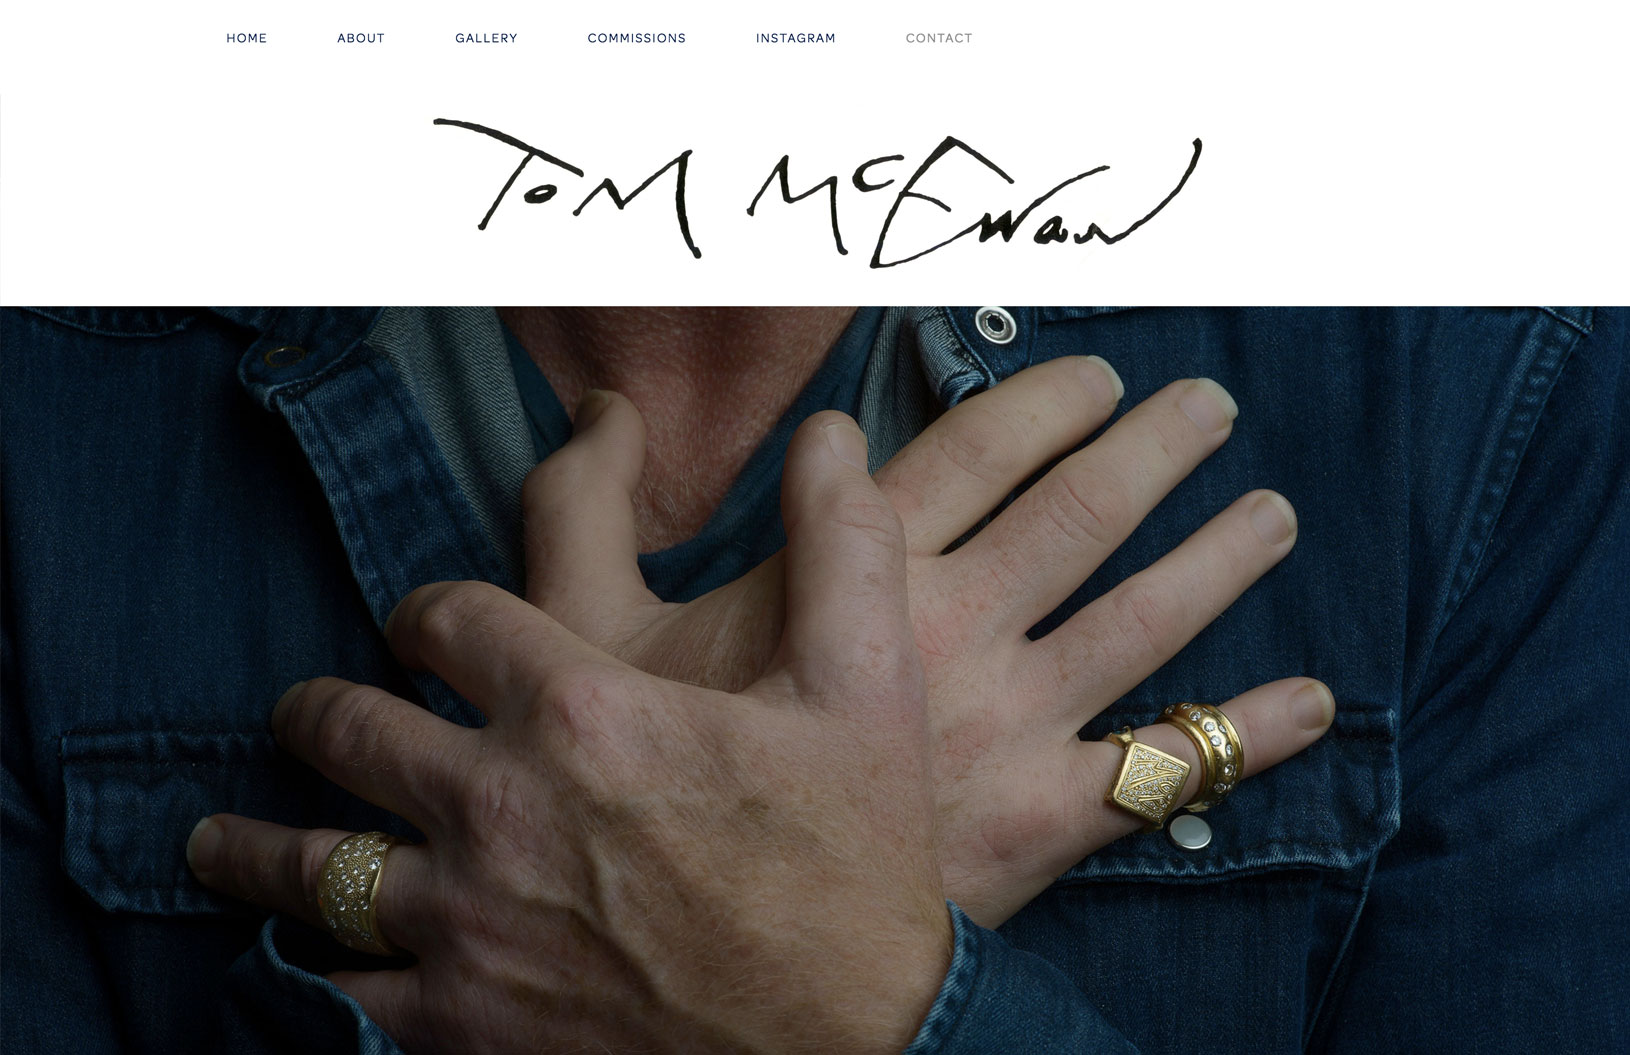 jewellery-website-design-tom-mcewan.jpg